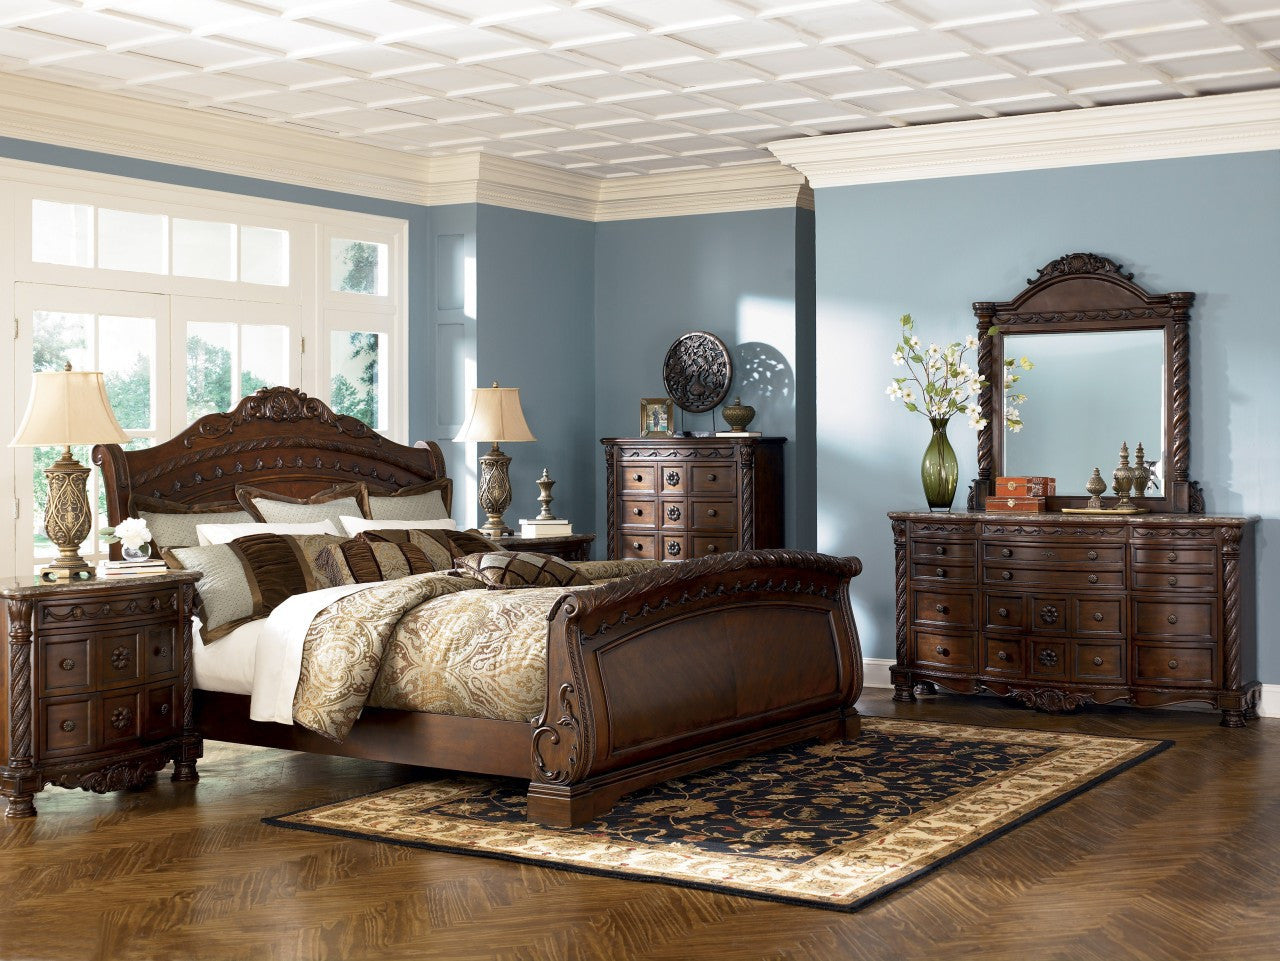 design sets beds frames info bed ideas home frame ikea sleeper for king sale artrio ashley furniture bedroom prices